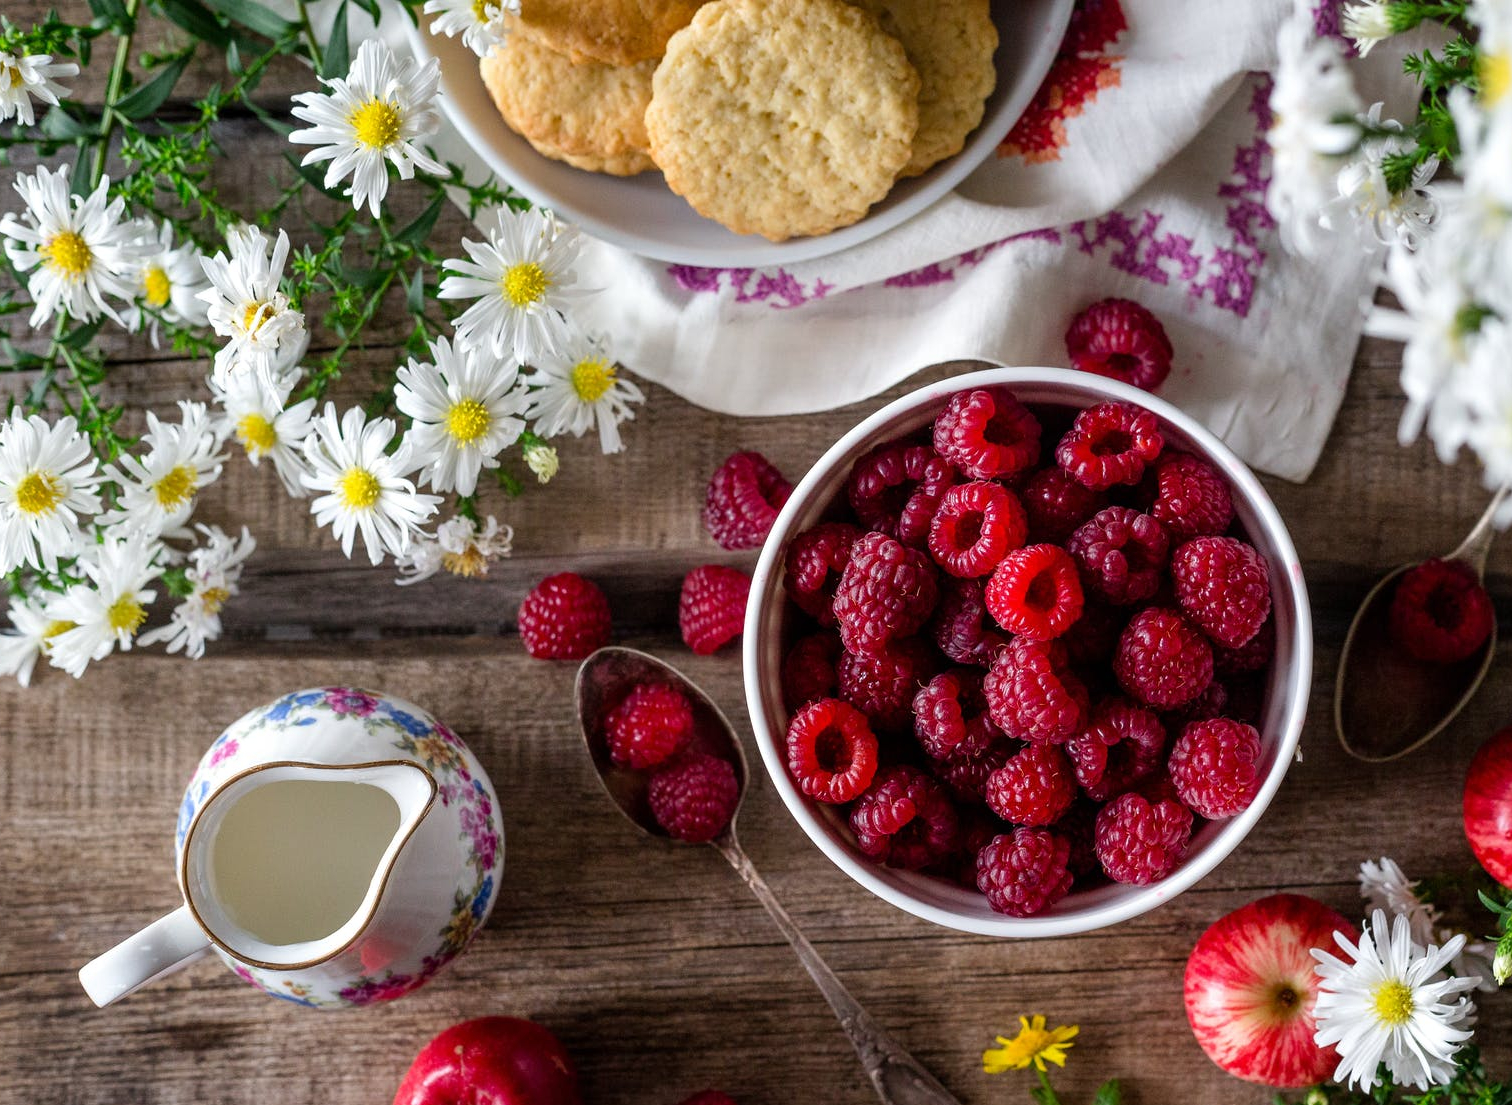 bowl of berries with biscuits and cream